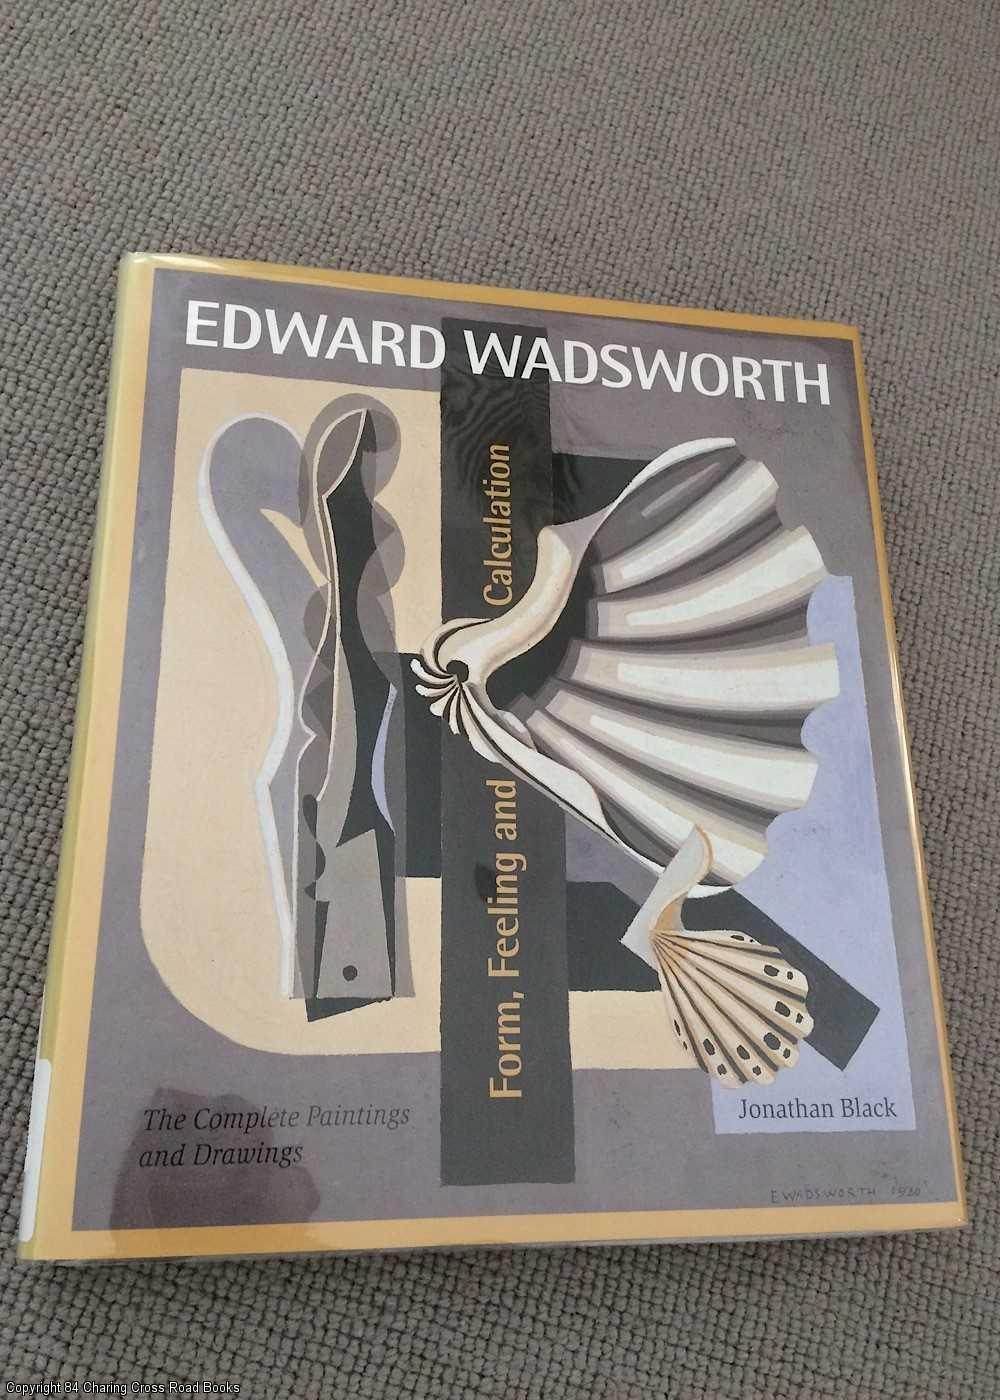 BLACK, JONATHAN - Edward Wadsworth: Complete Painting and Drawings